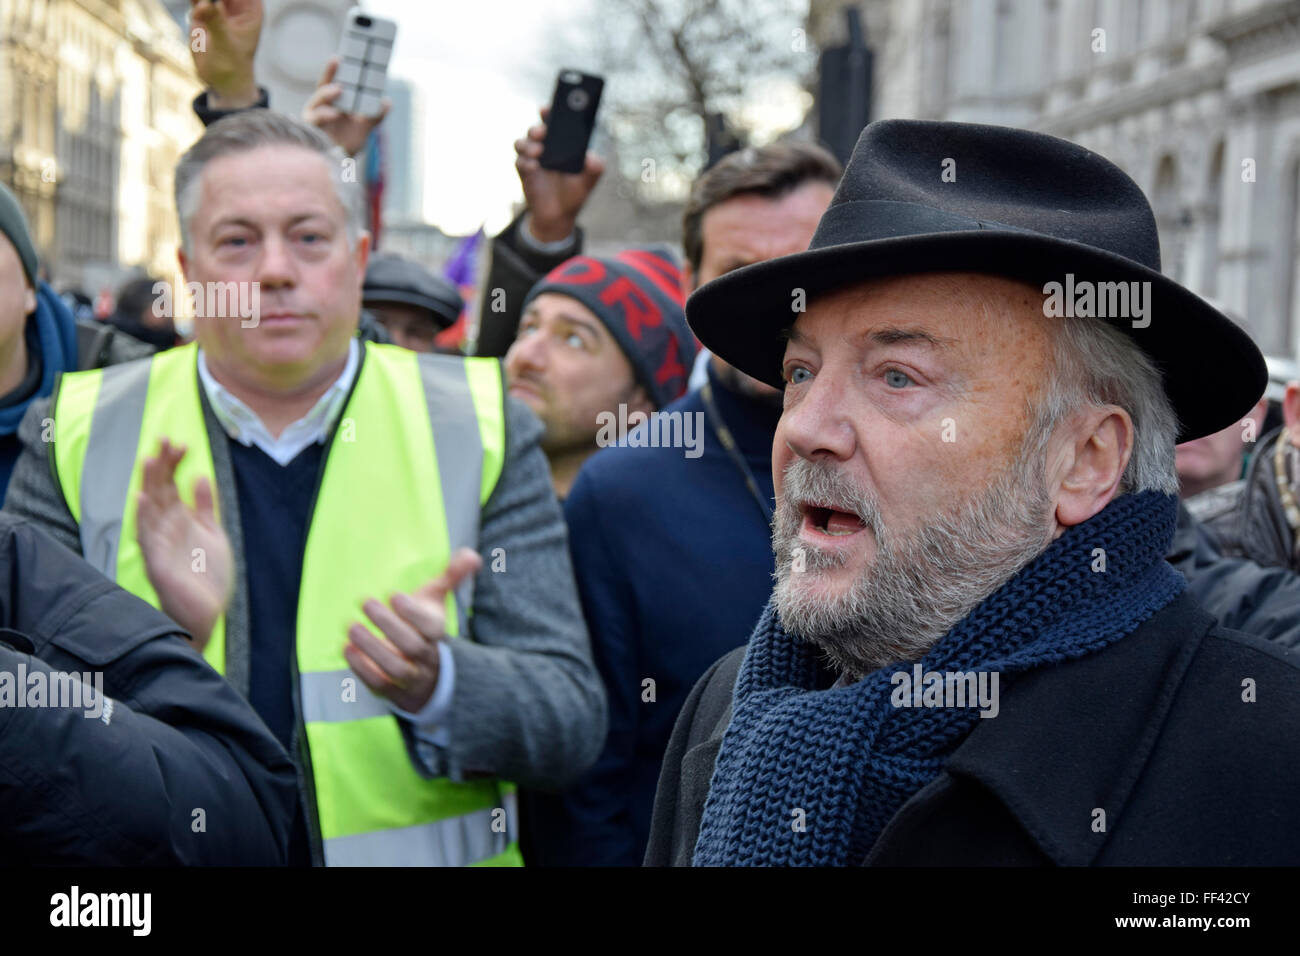 London, UK. 10th February, 2016. Thousands of black cab drivers bring central London to a standstill in protest - Stock Image